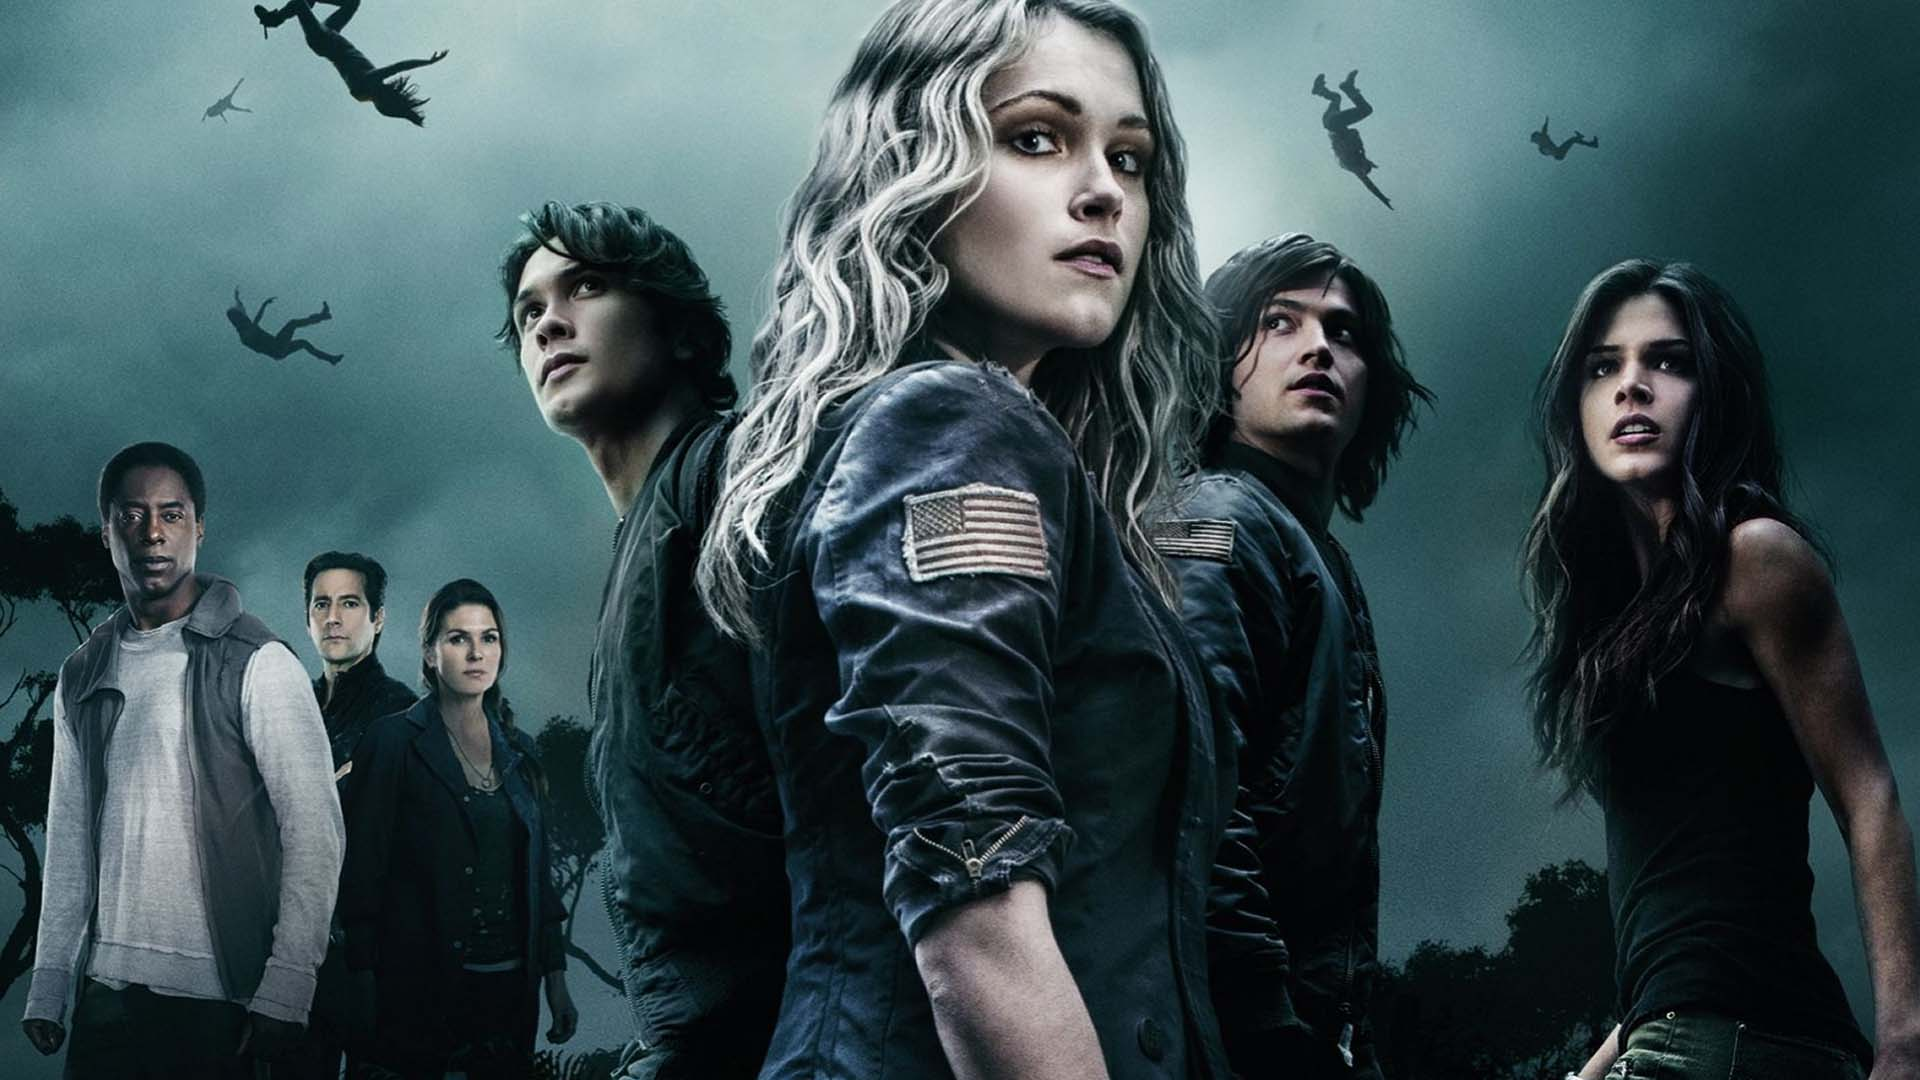 Cast of The 100